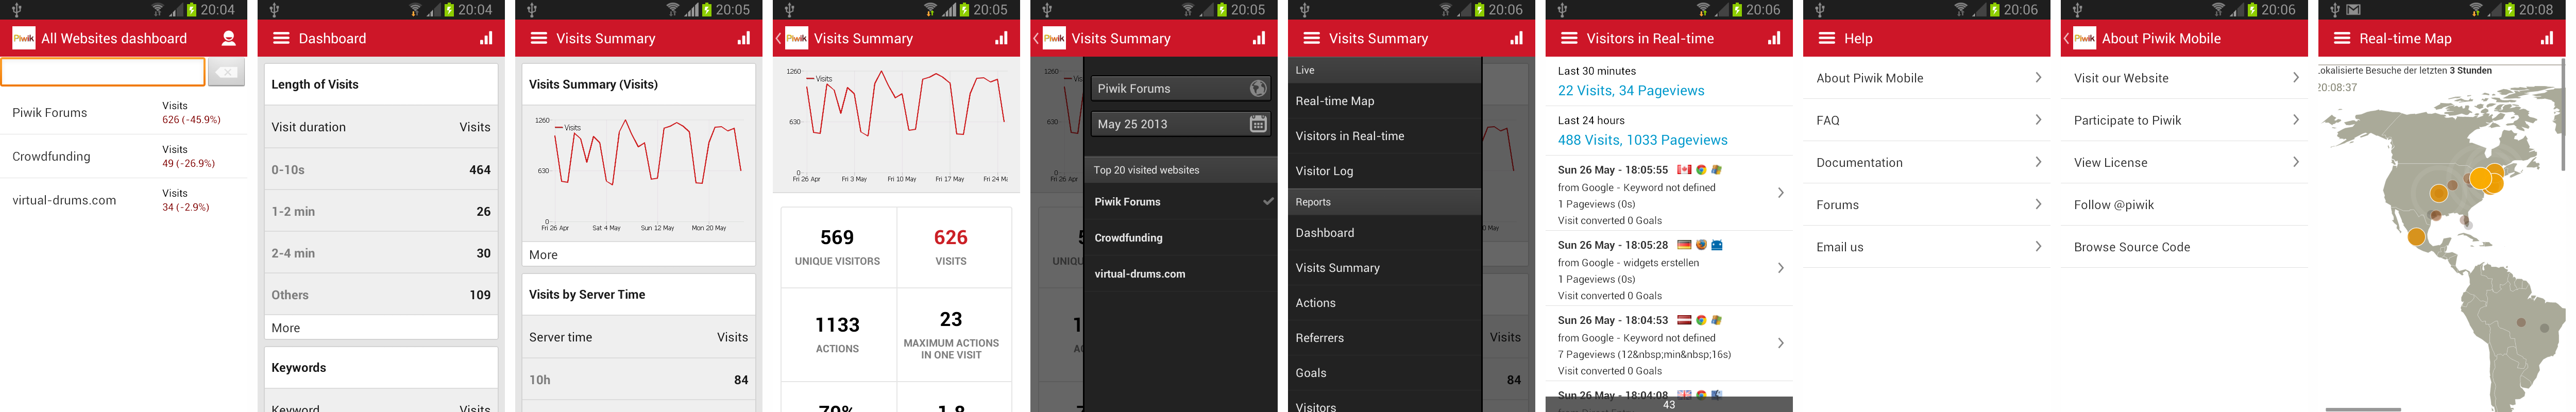 piwik-mobile-2-alpha-android-preview